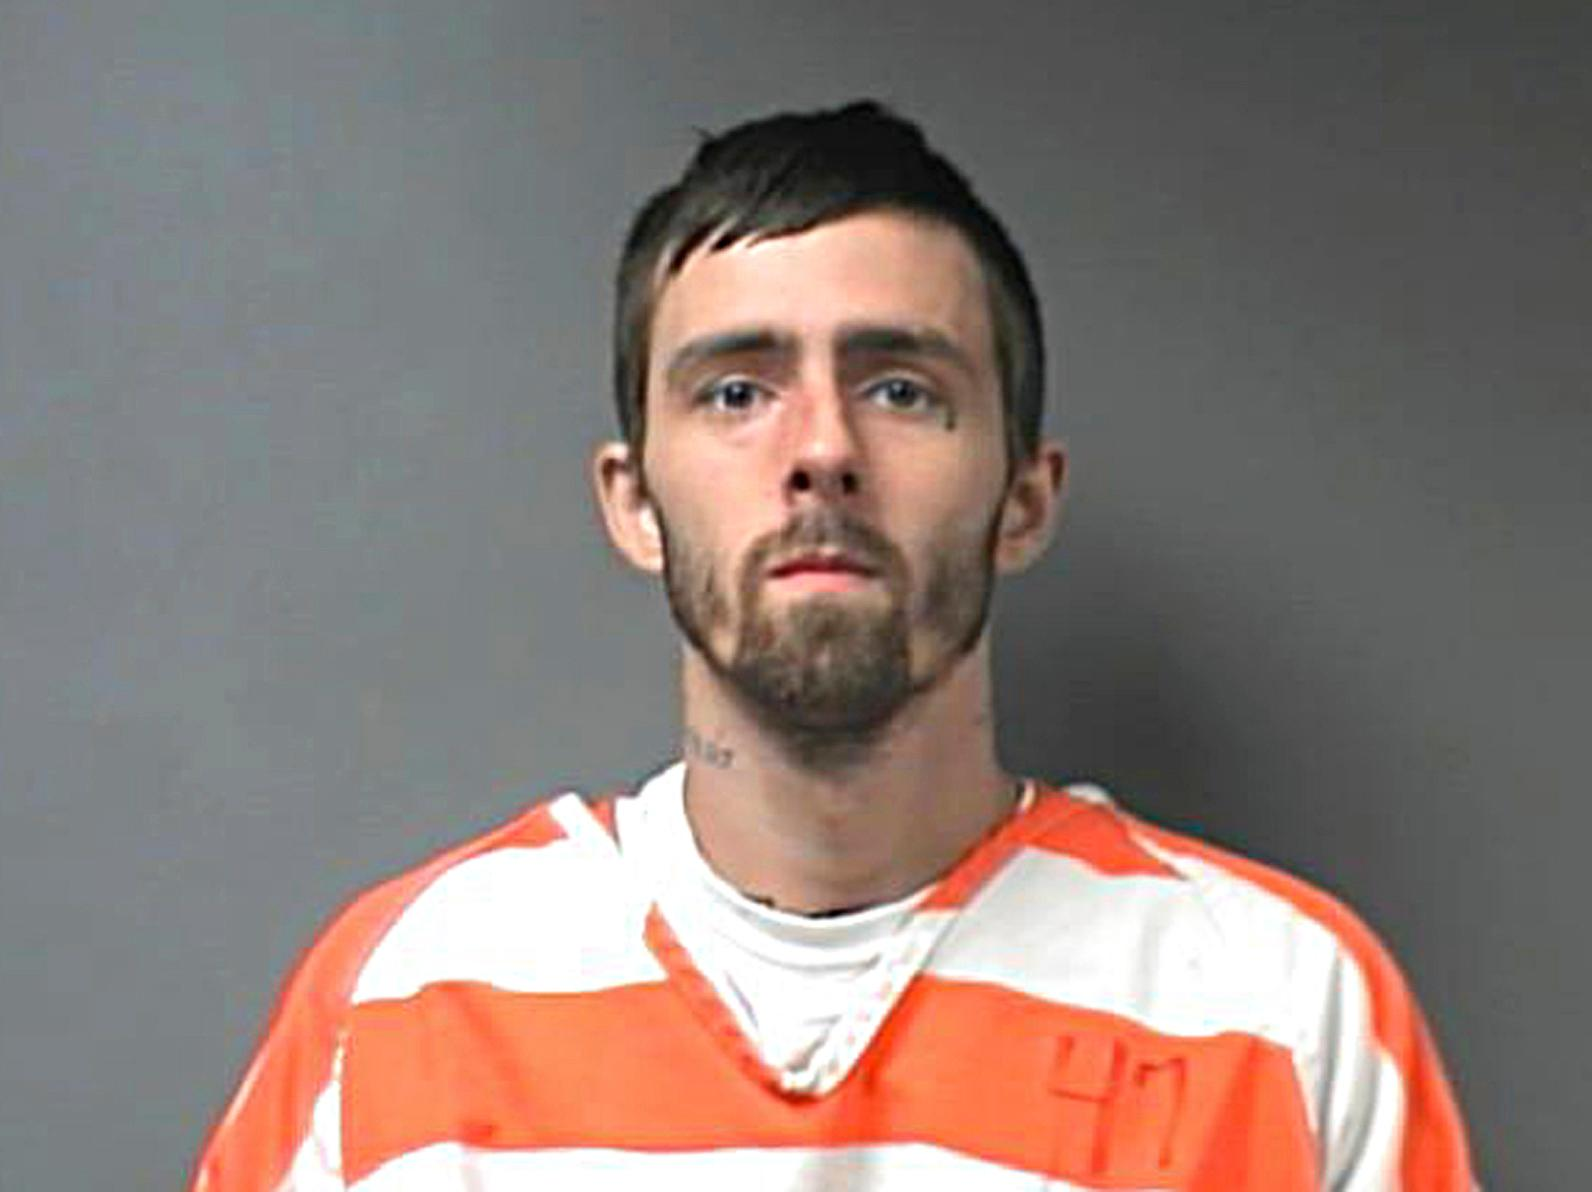 This undated photo made available by the Walker County, Ala., Sheriff's Office, shows Brady Andrew Kilpatrick. A manhunt is underway for Kilpatrick, who escaped with 11 other inmates from the Walter County jail on Sunday, July 30, 2017. All but Kilpatrick have been recaptured. (Walter County Sheriff's Office via AP)